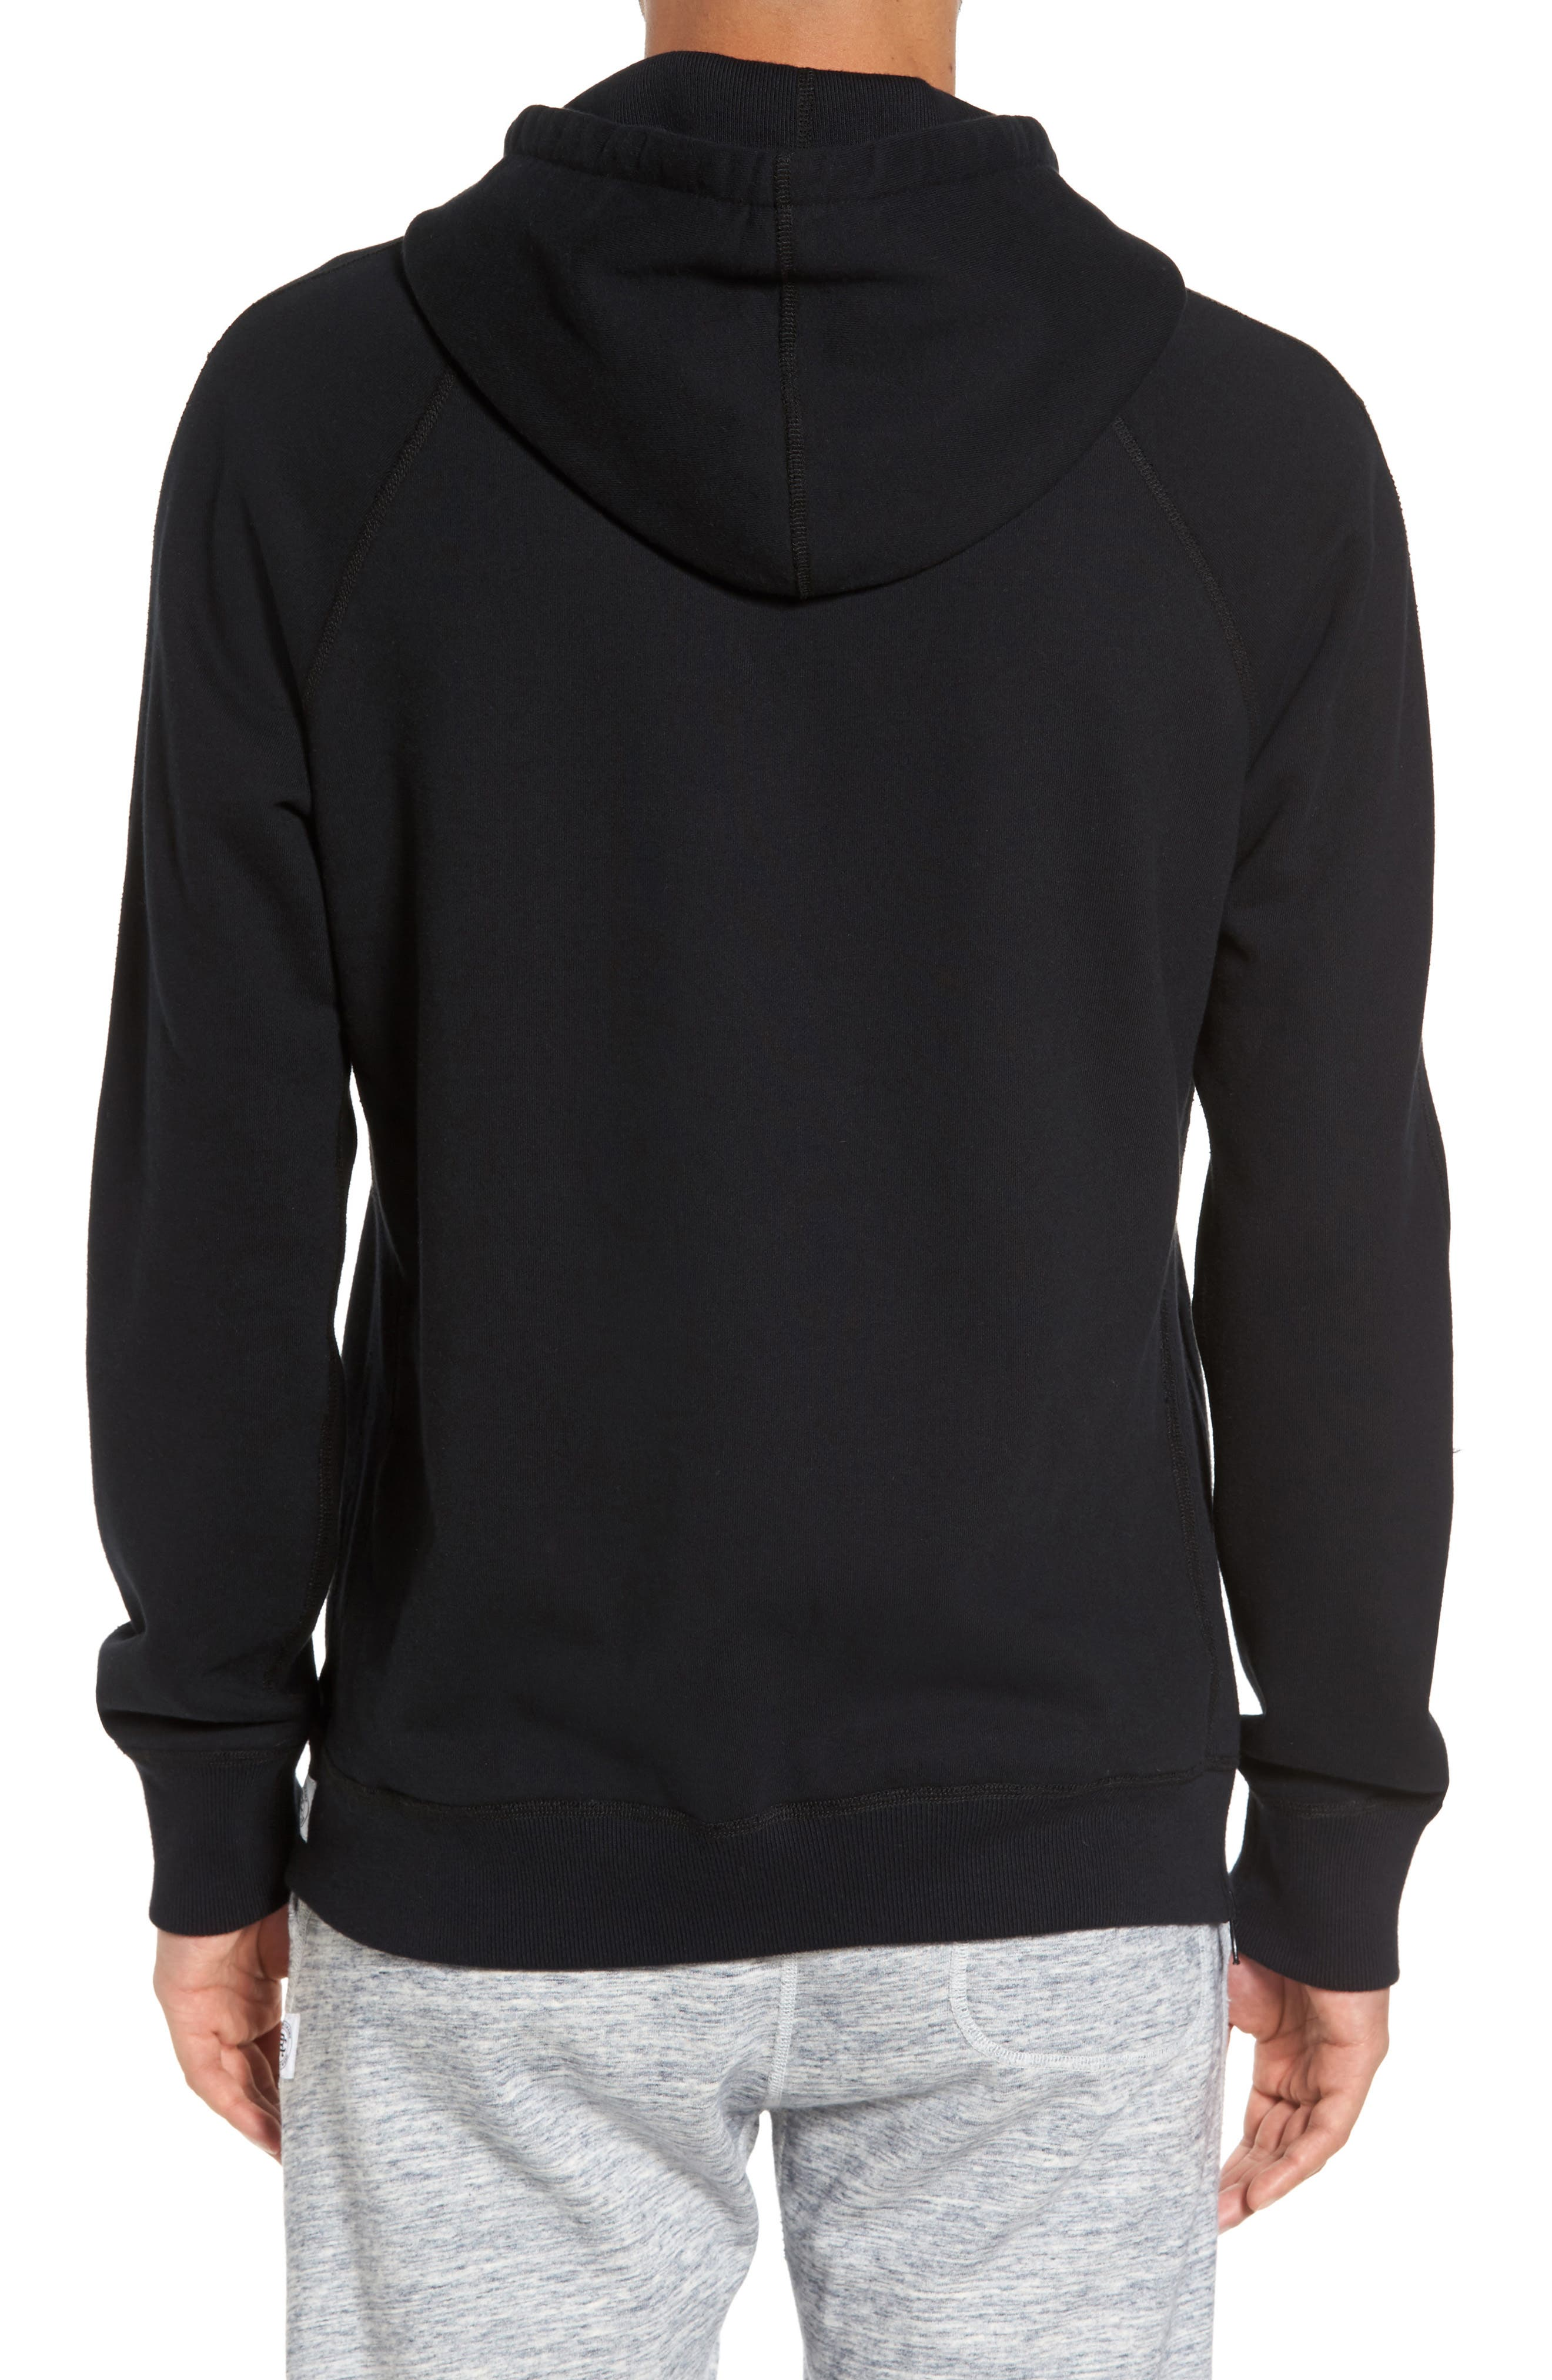 REIGNING CHAMP,                             French Terry Hoodie,                             Alternate thumbnail 2, color,                             001